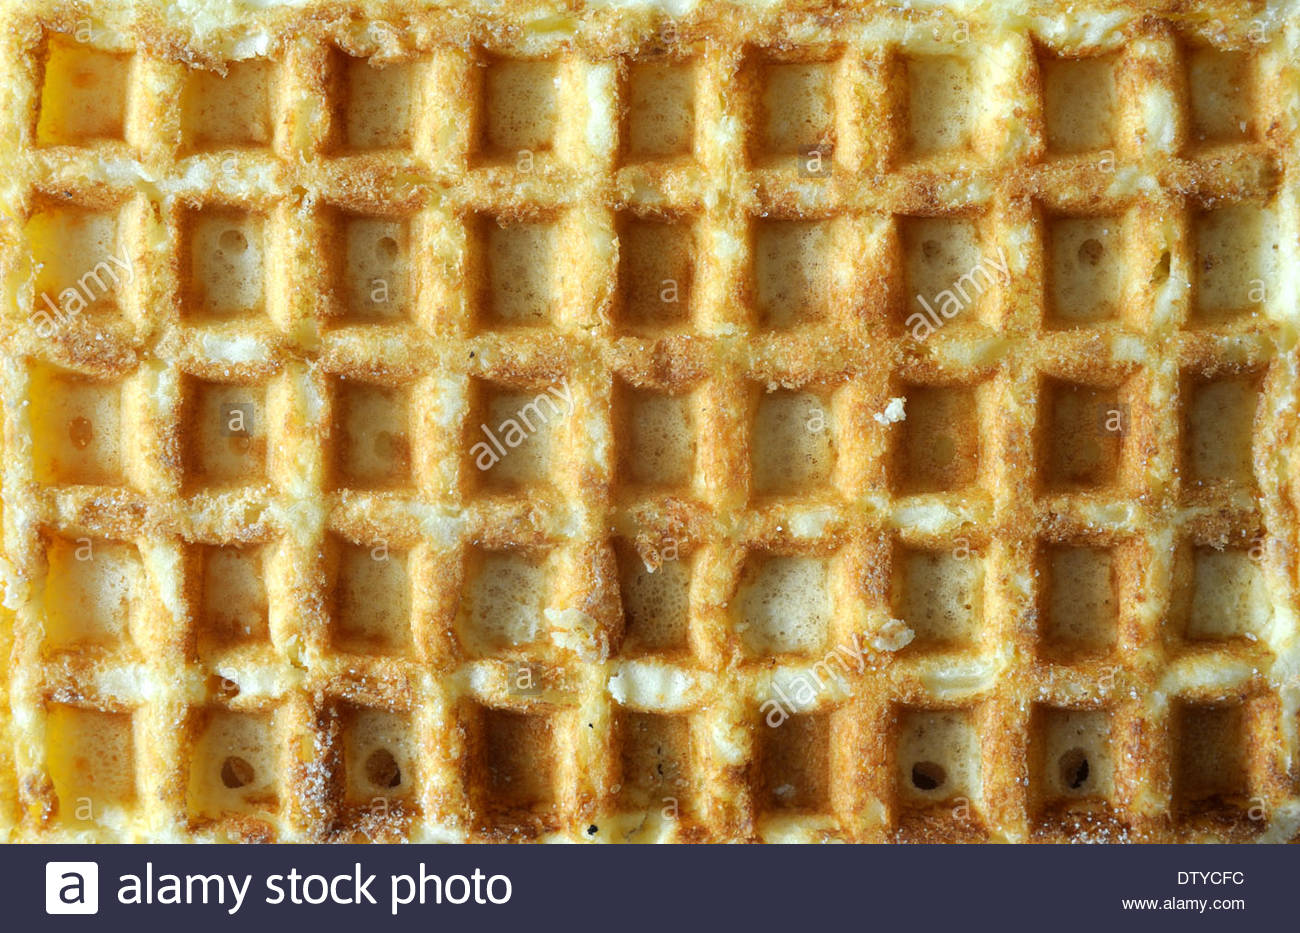 Belgian waffle close-up. - Stock Image